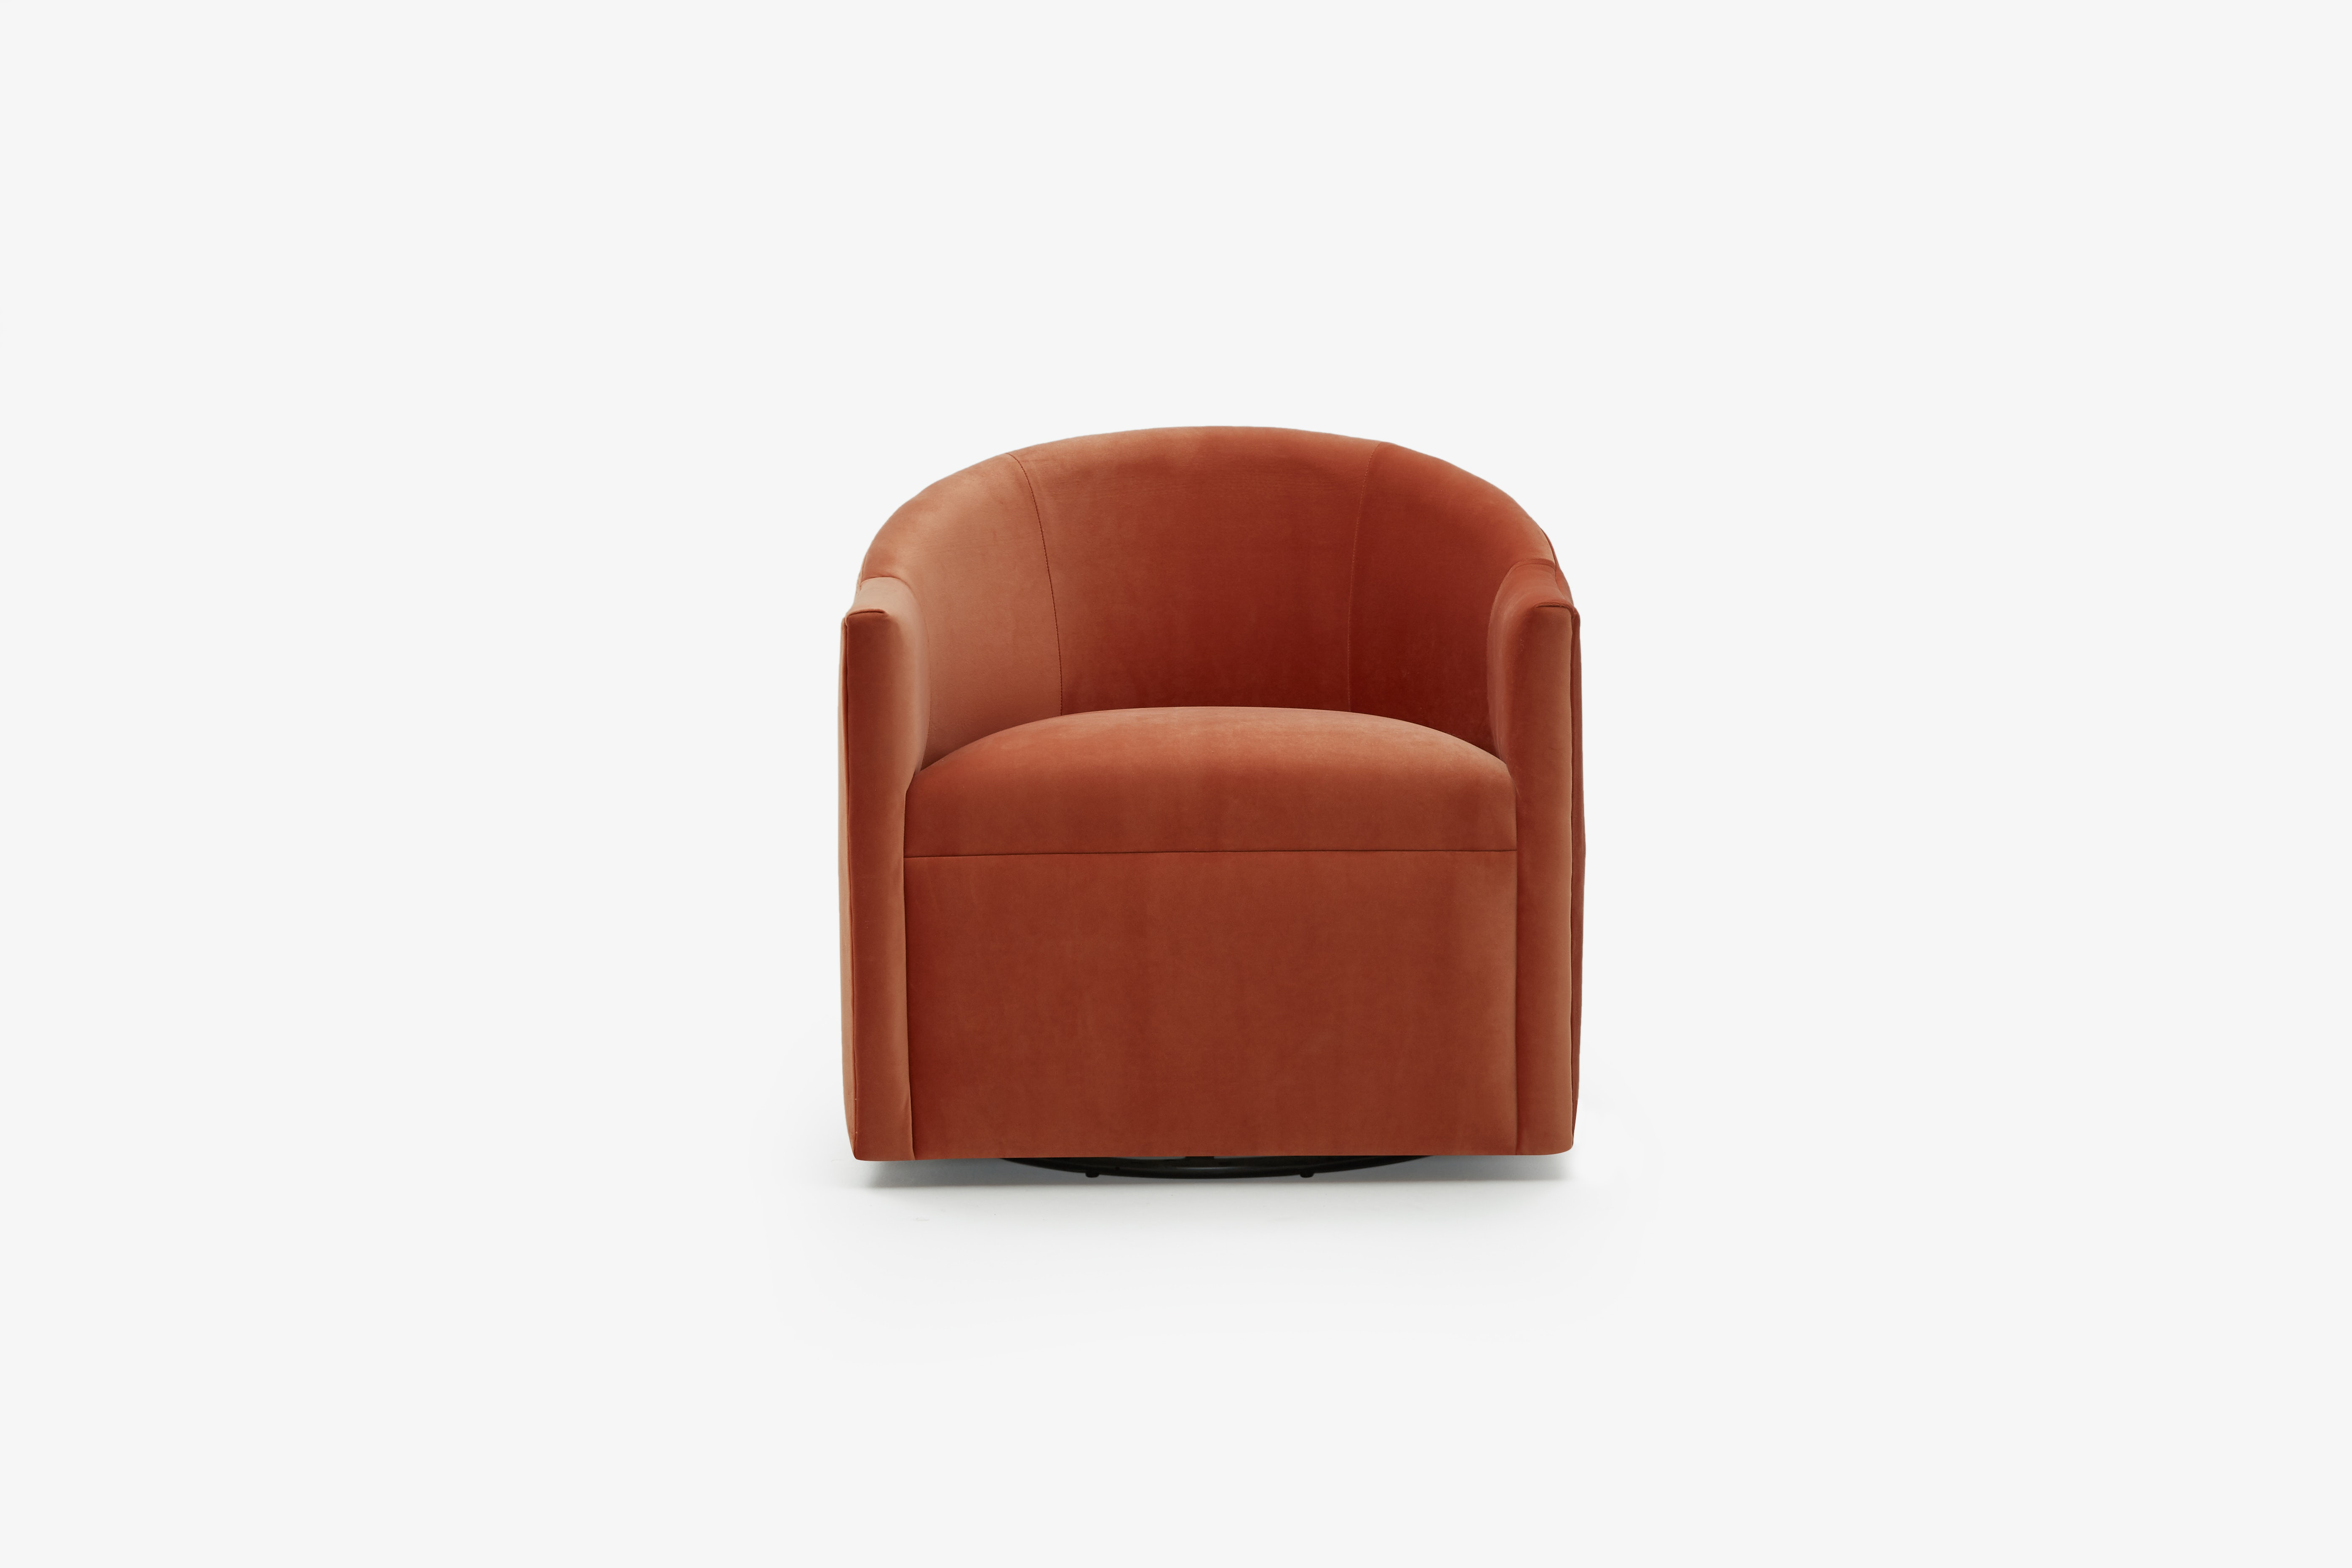 Jolie Swivel Chair Sorrento Coral